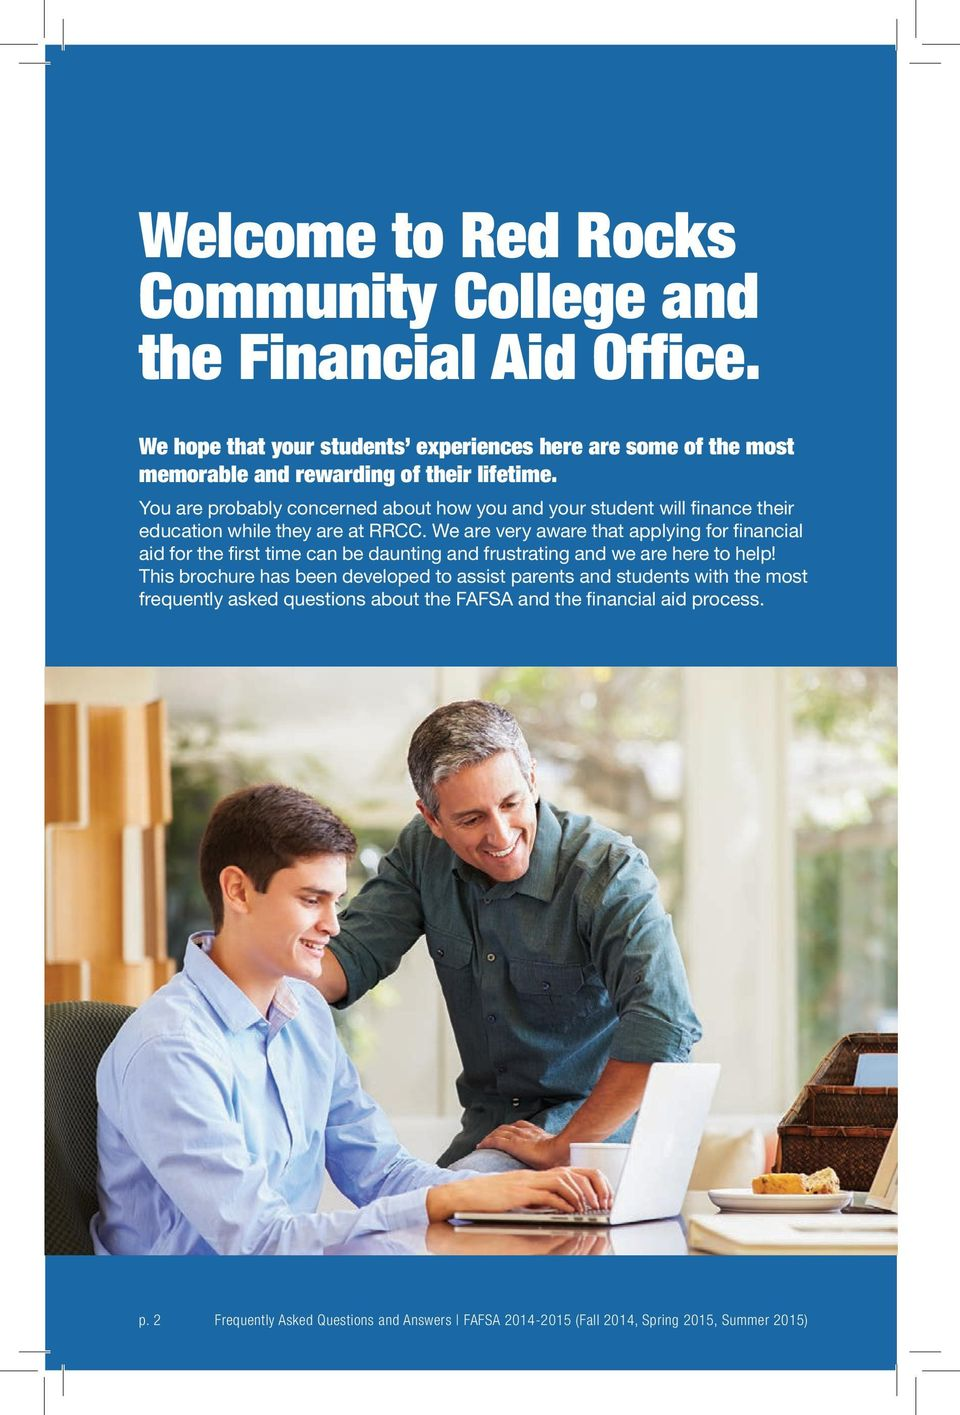 You are probably concerned about how you and your student will finance their education while they are at RRCC.